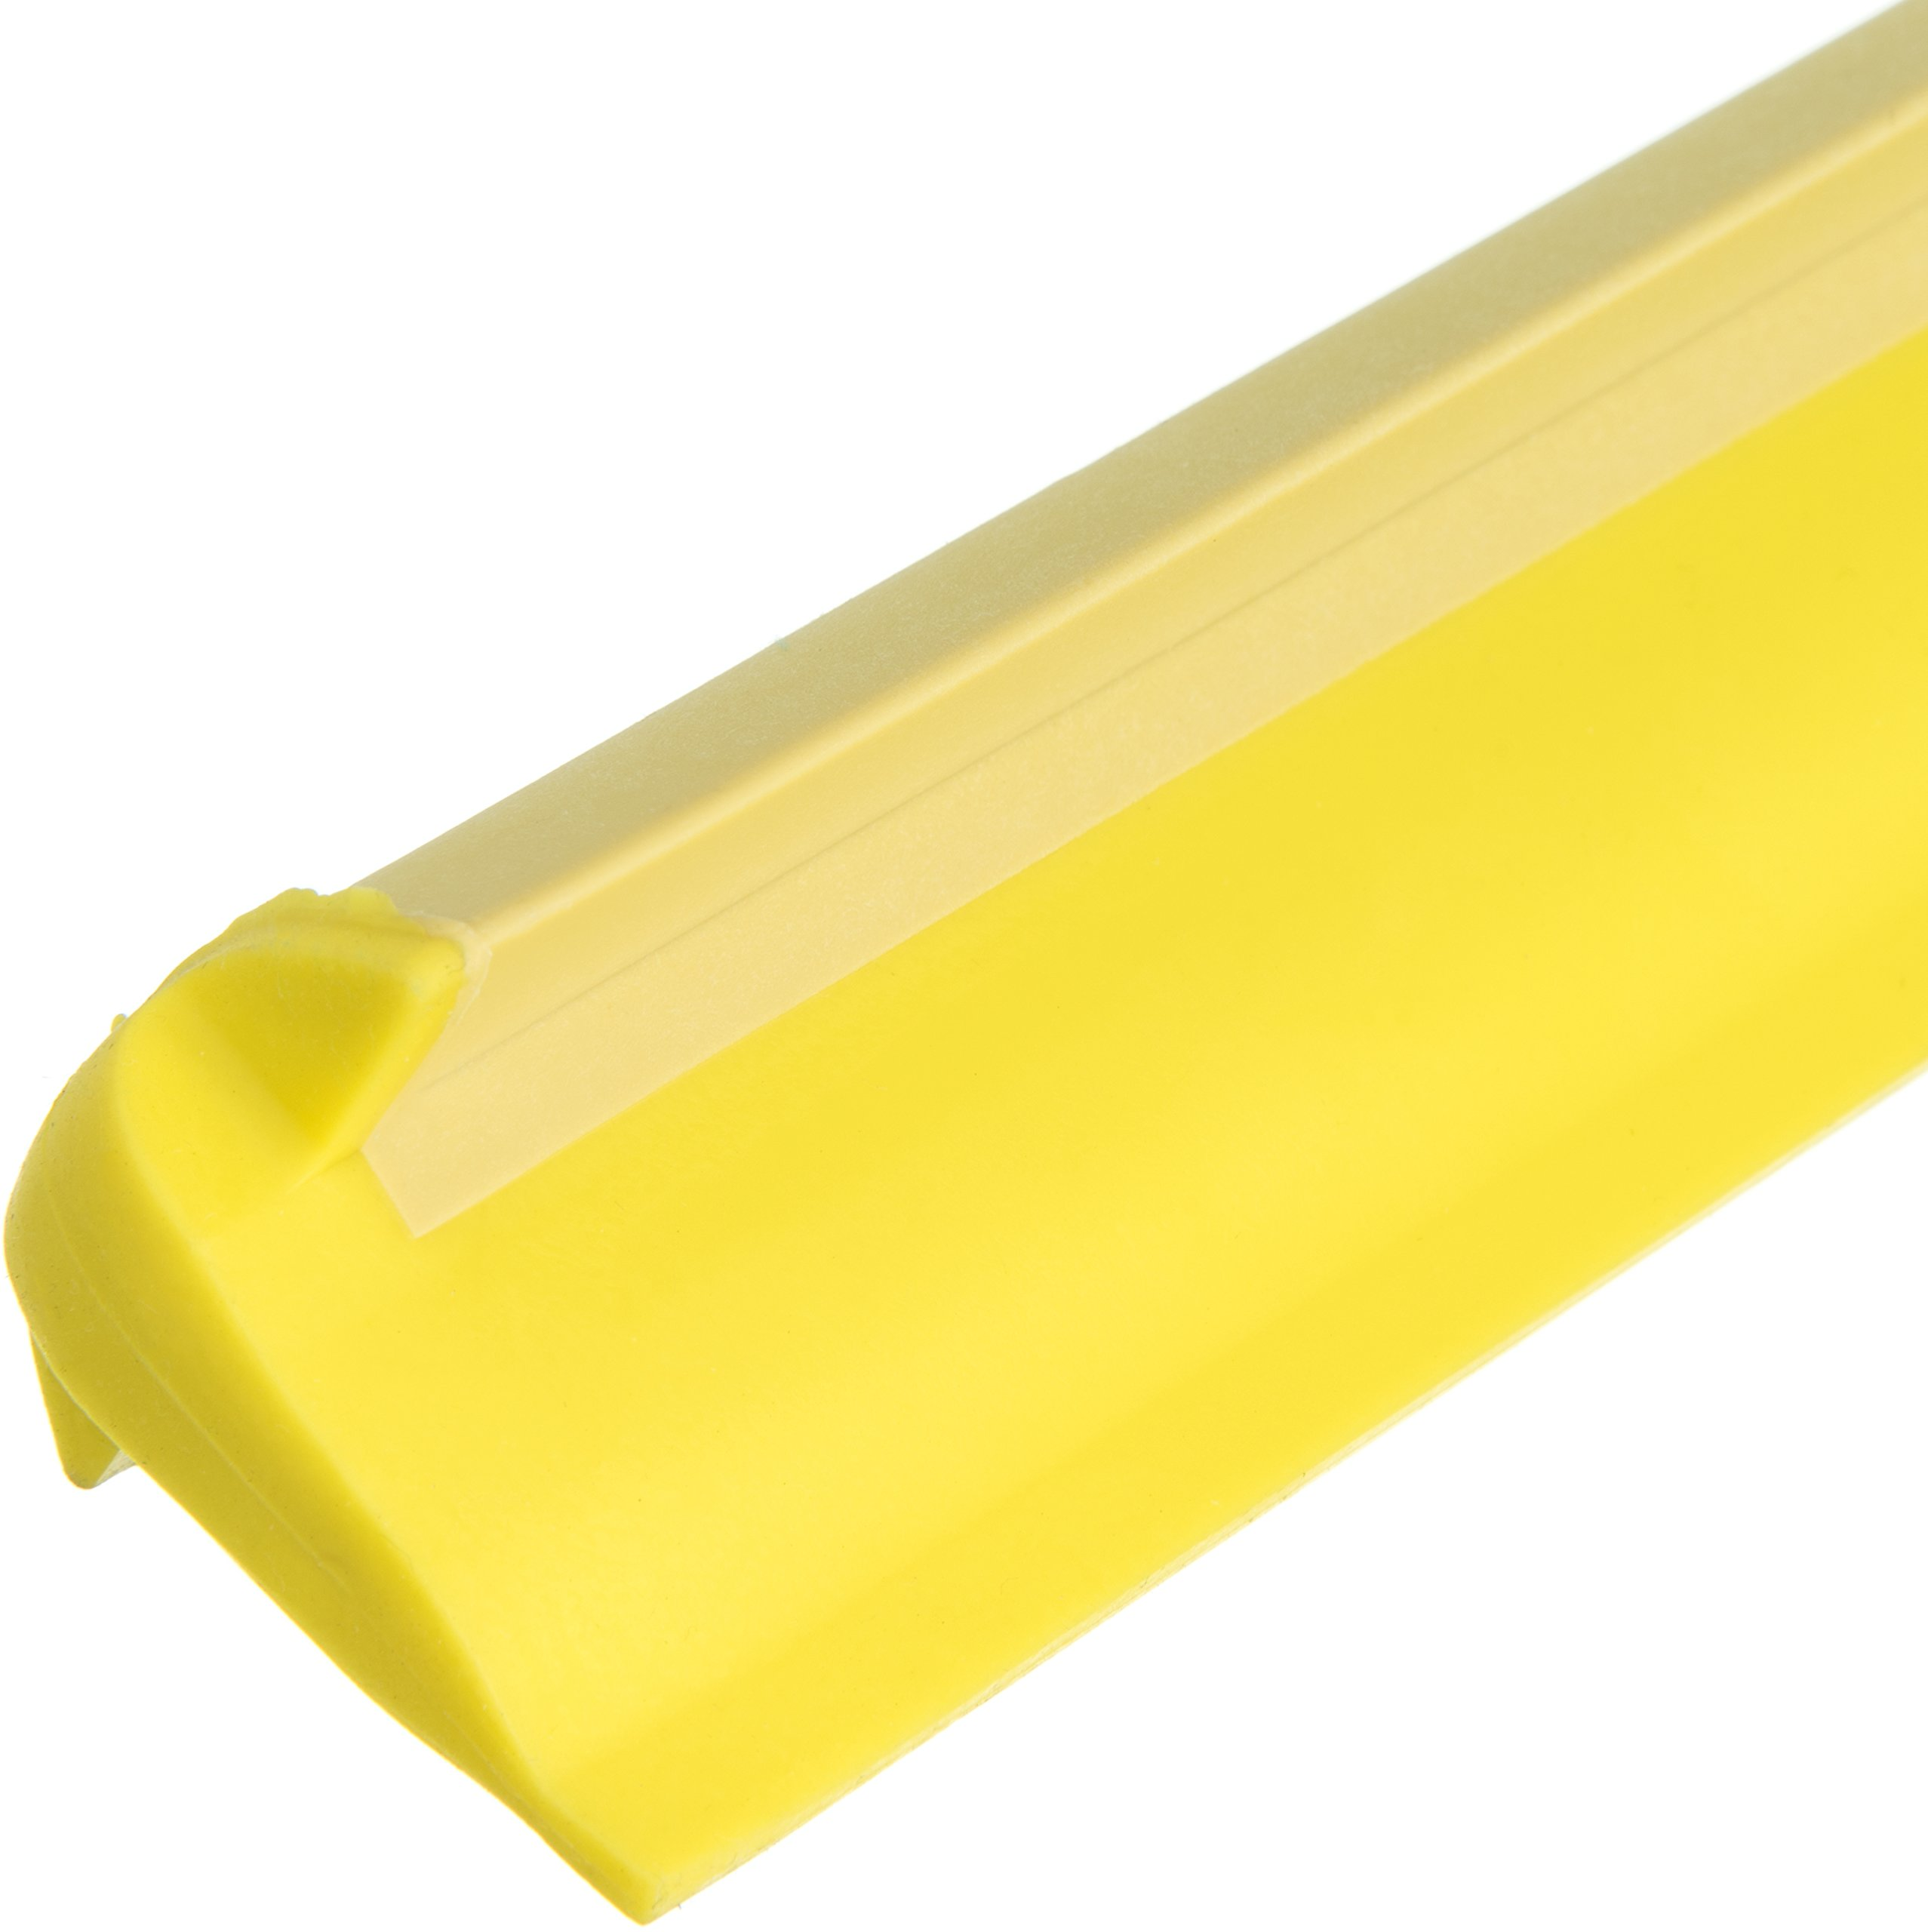 Carlisle 3656704 Solid One-Piece Foam Rubber Head Floor Squeegee, 20'' Length, Yellow (Case of 6) by Carlisle (Image #8)